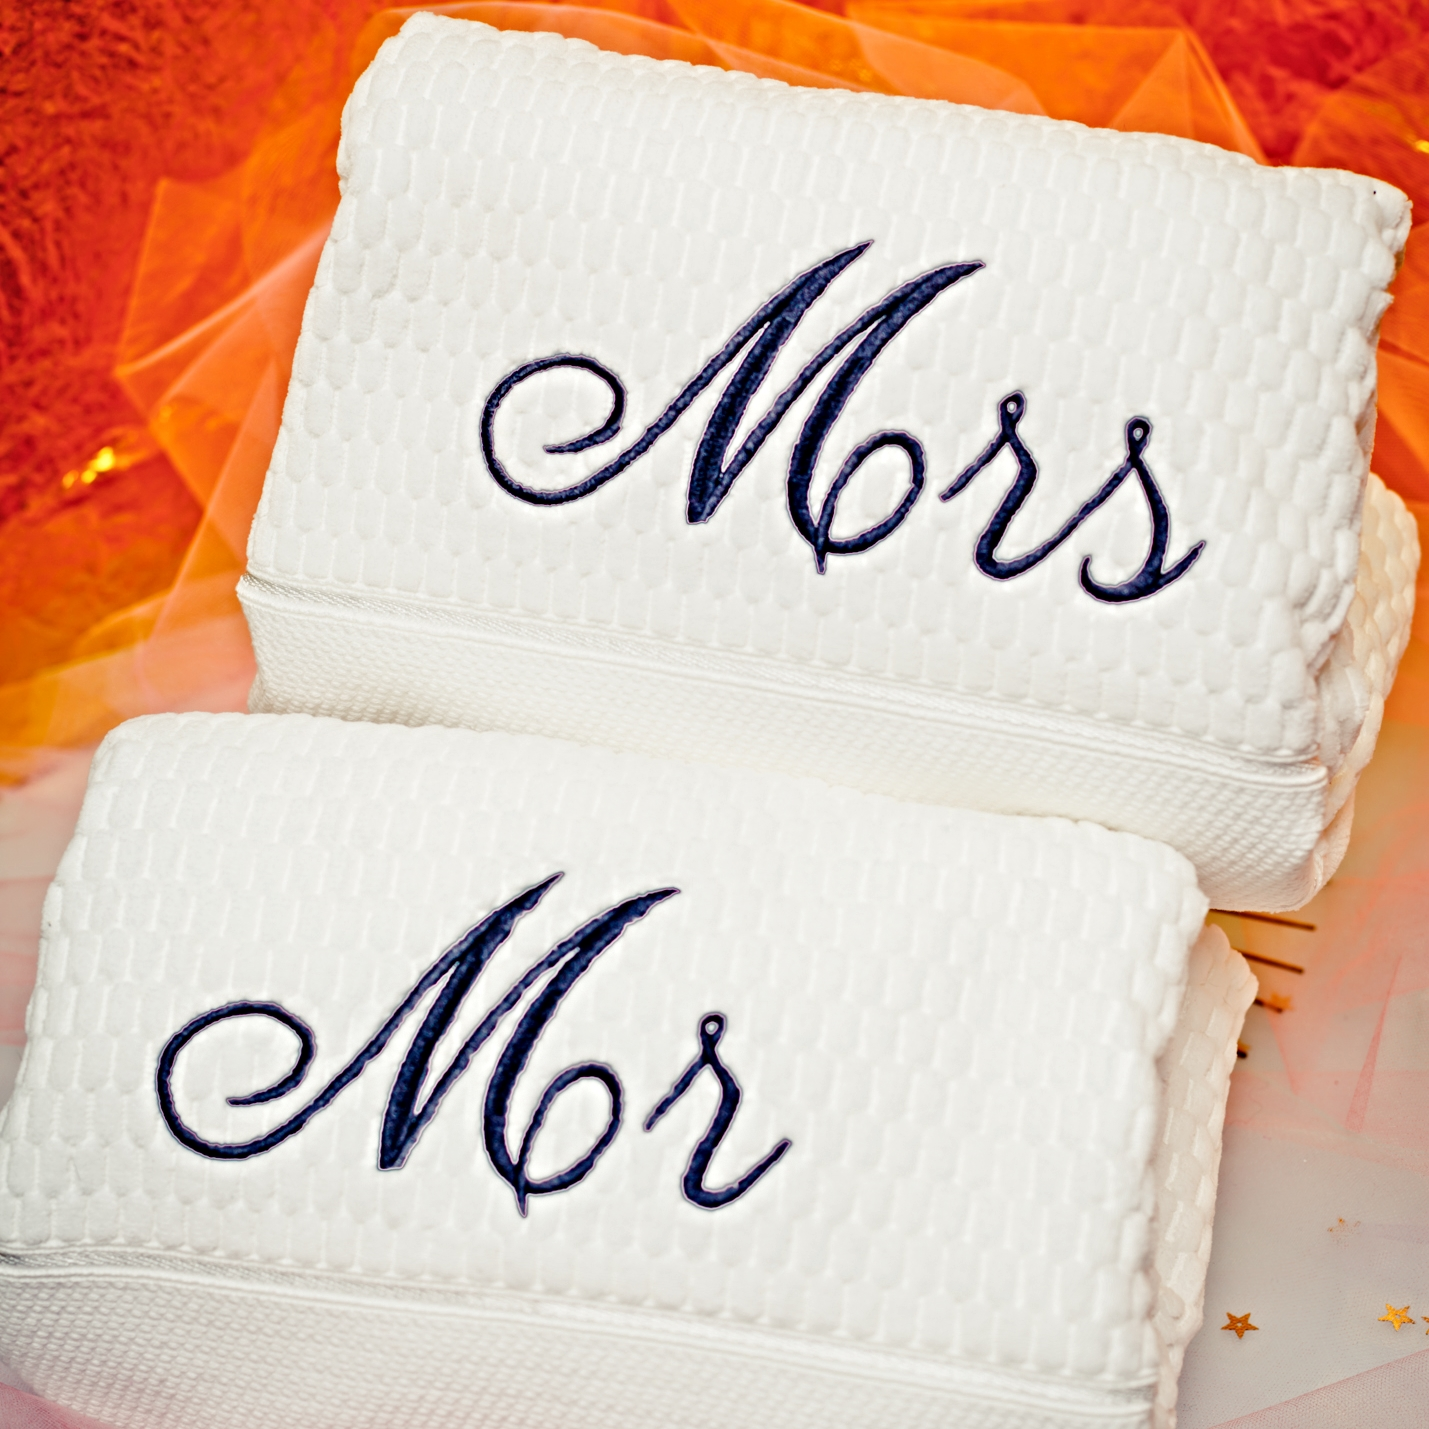 Personalized Towels @www.thedetaileddiva.com.jpg